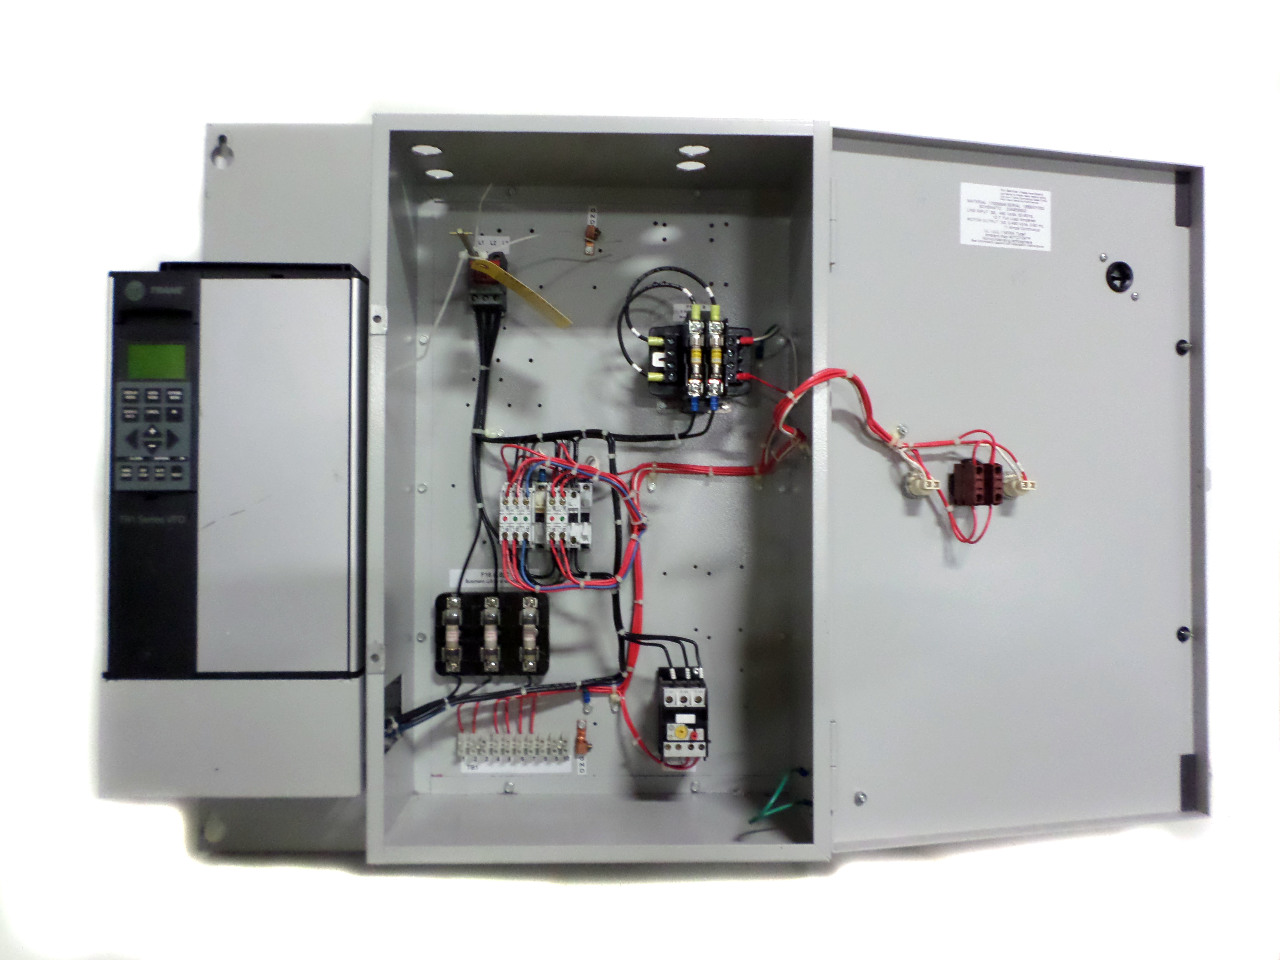 Trane Tr1 Series Vfd 6008 W Variable Frequency Drive Electronics Hobby 176z8888